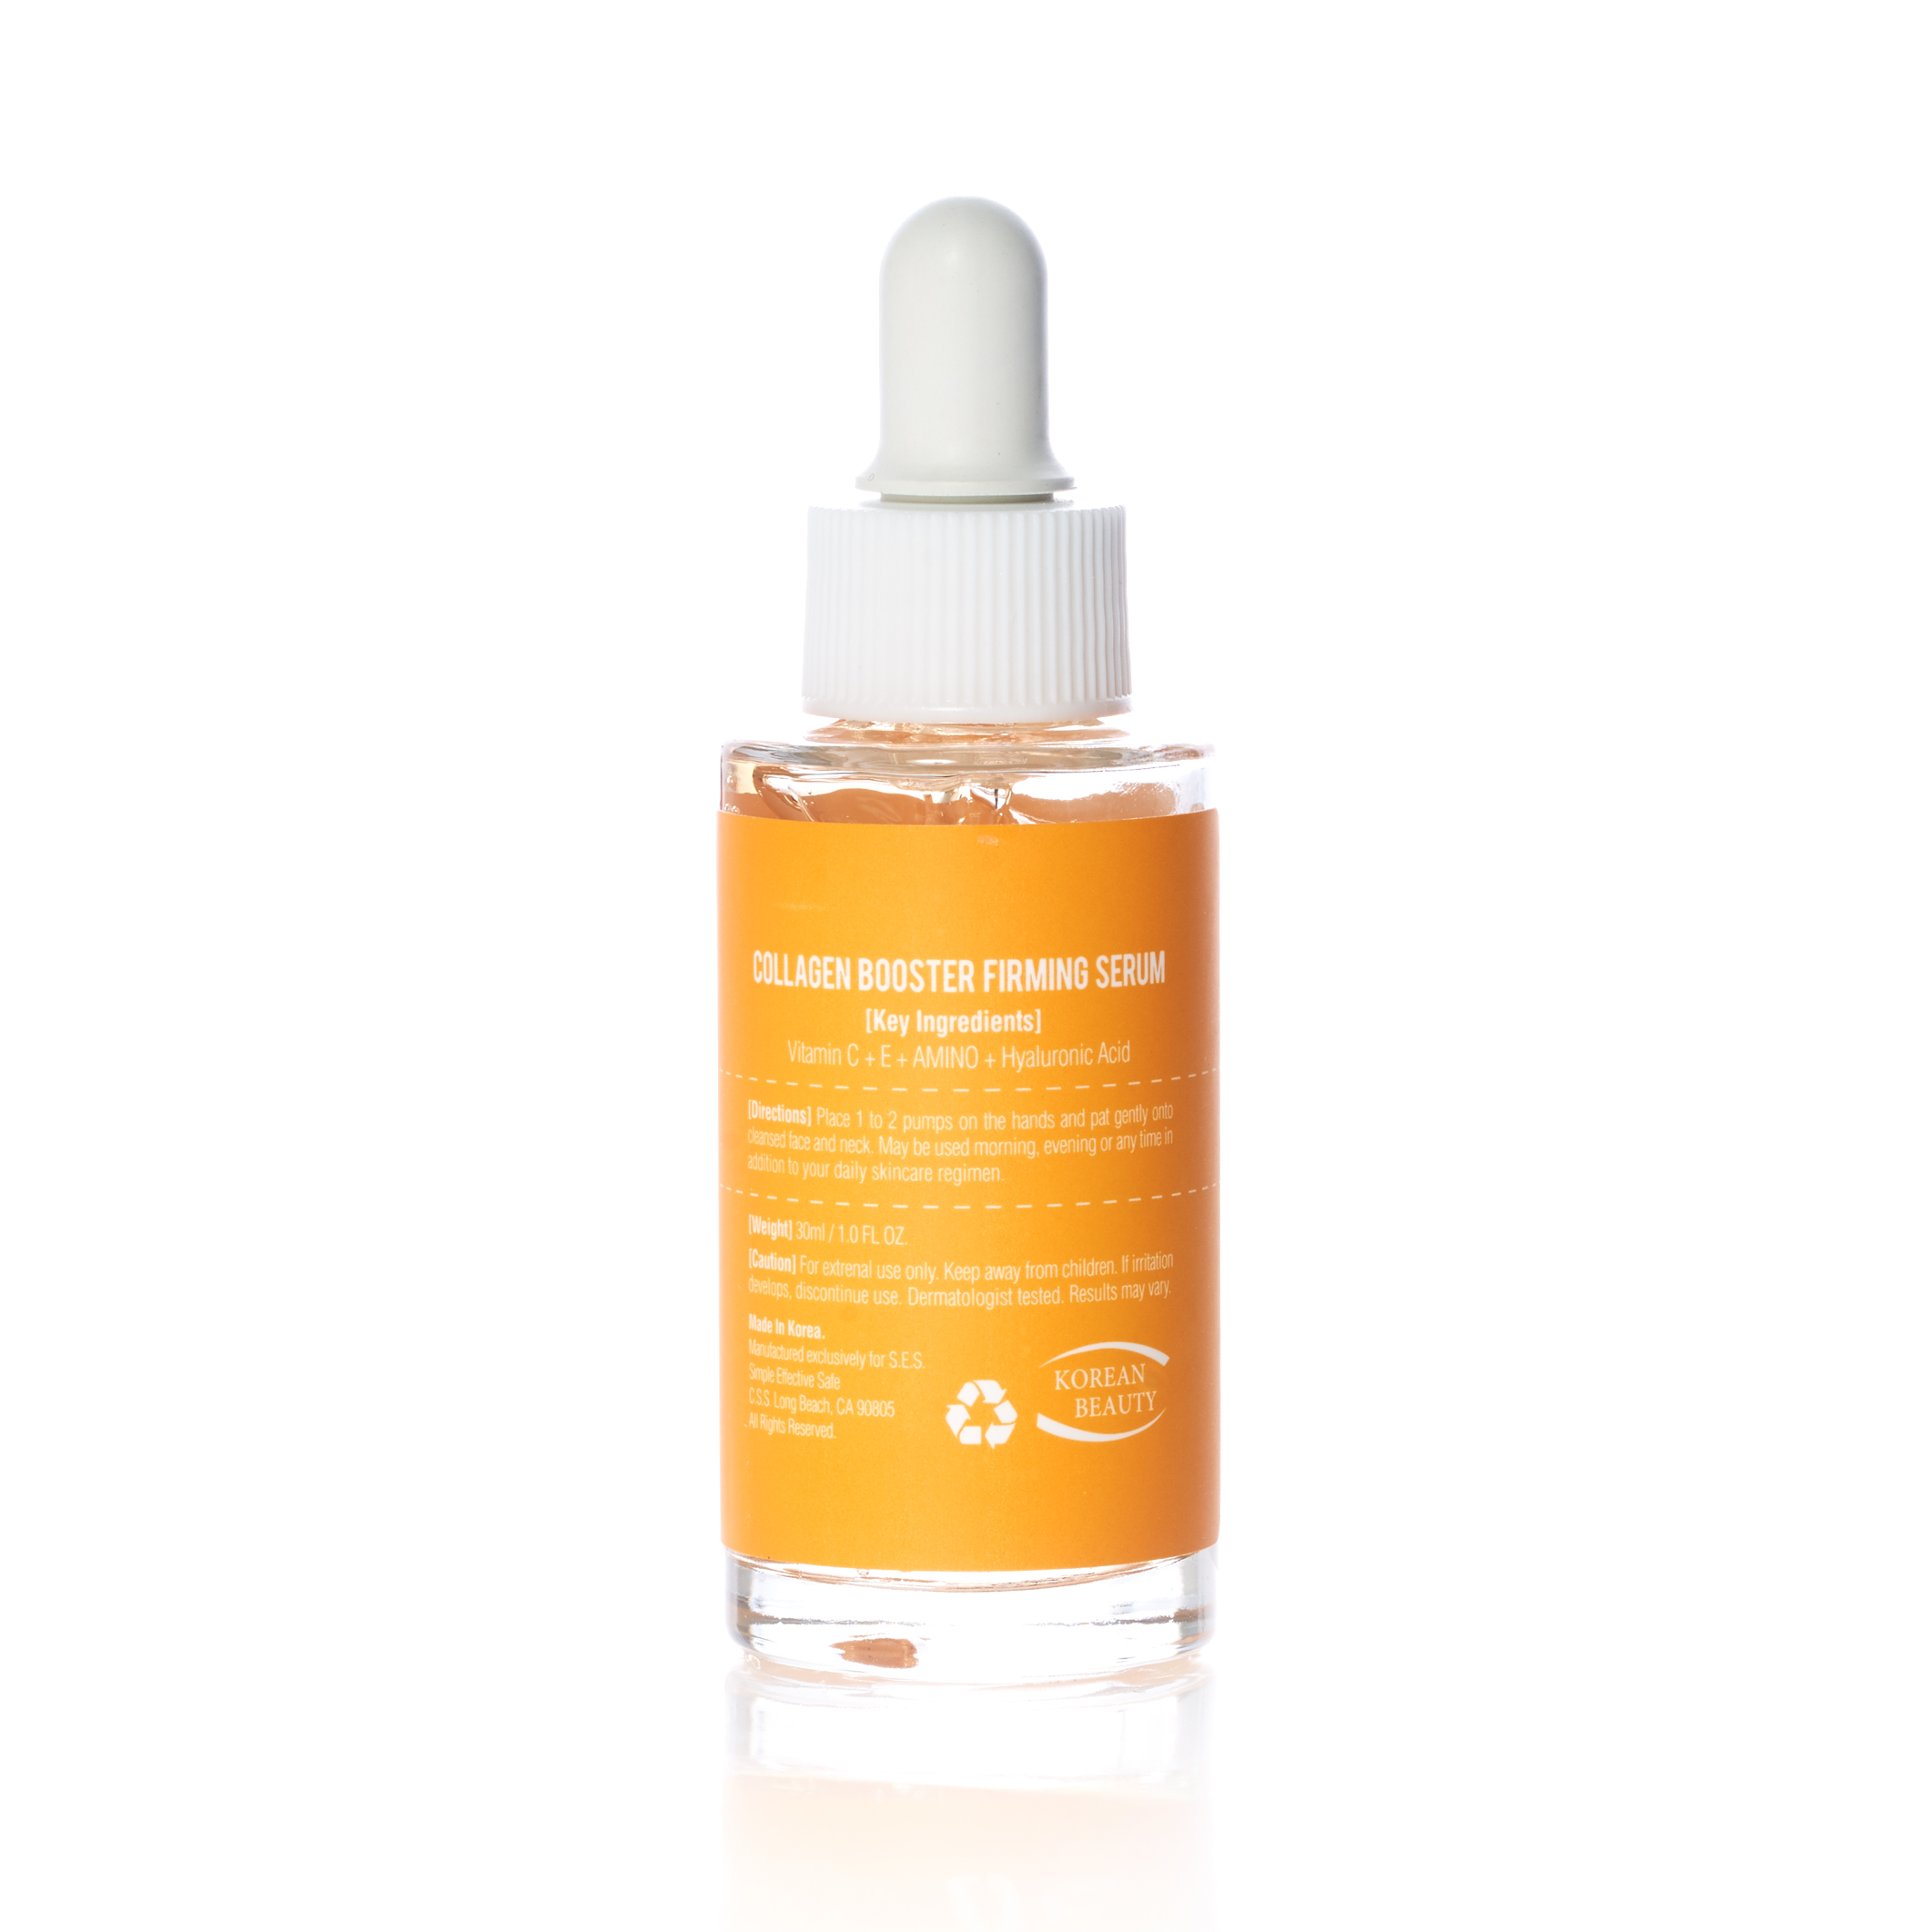 Back of S.E.S. Collagen Booster Firming Serum